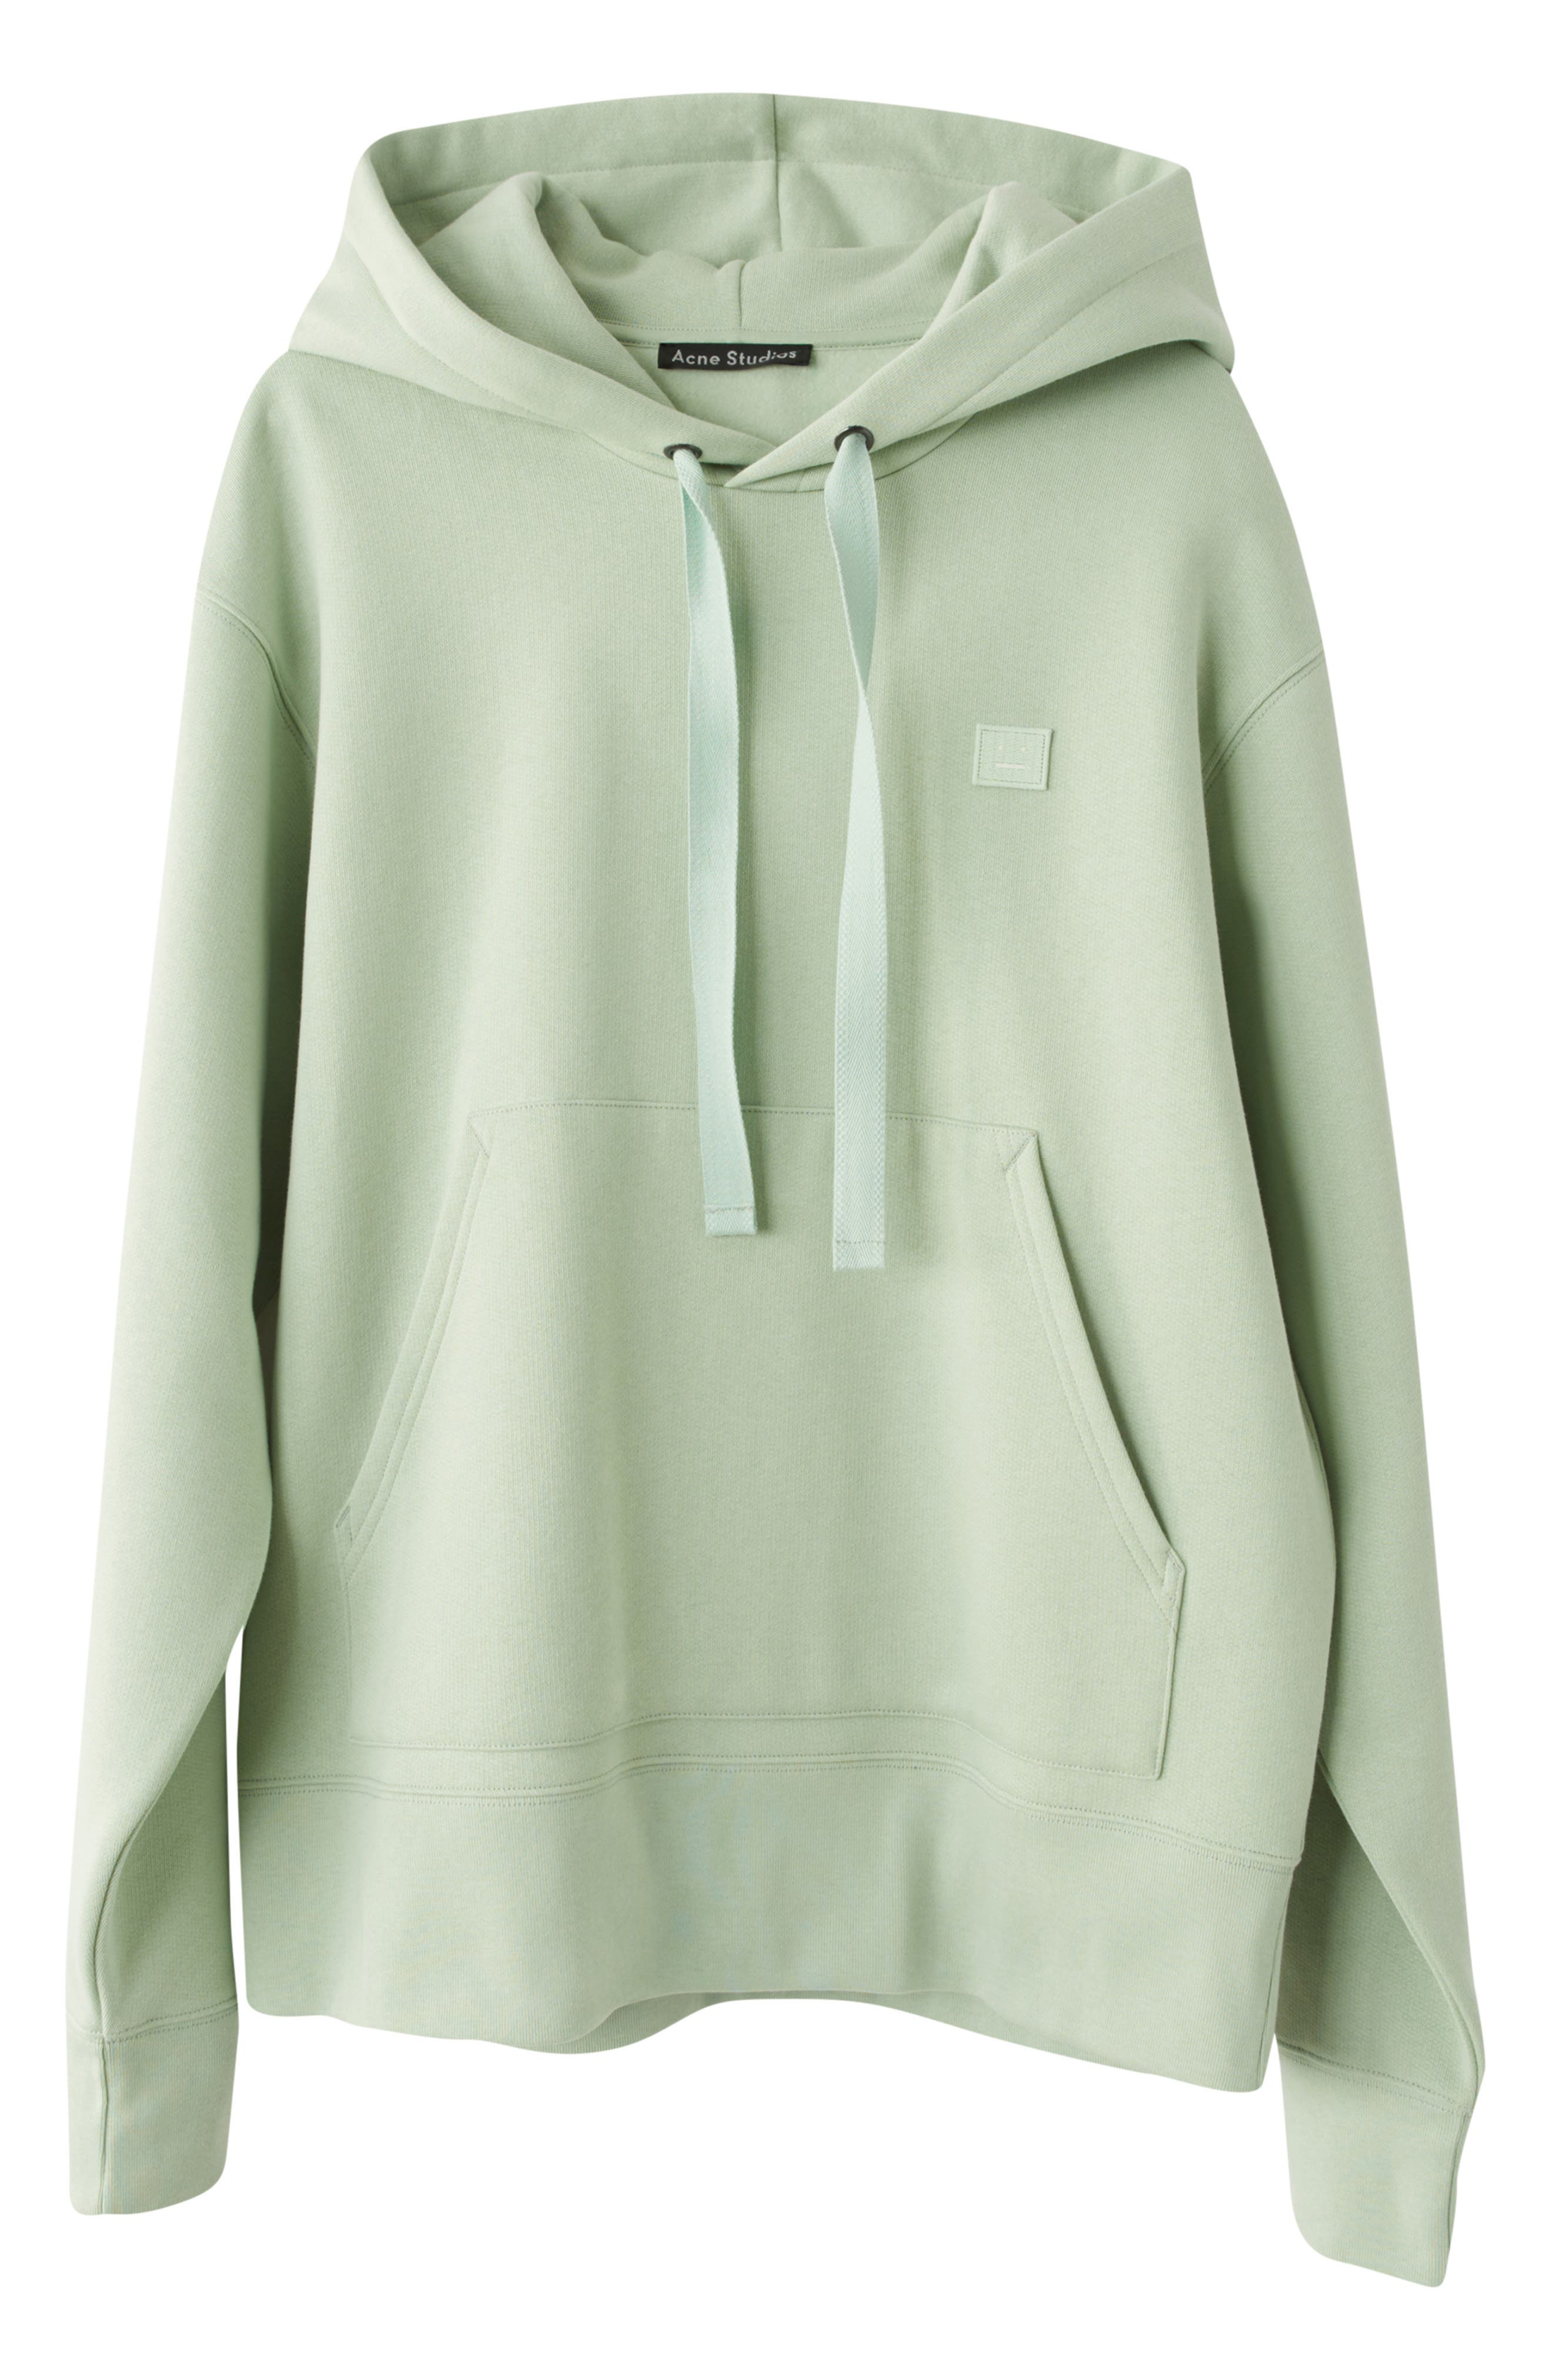 Beautiful Lucky Brand Small White Peace Sign Hoodie Zip Up Sweatshirt Women's Beautiful And Charming Clothing, Shoes & Accessories